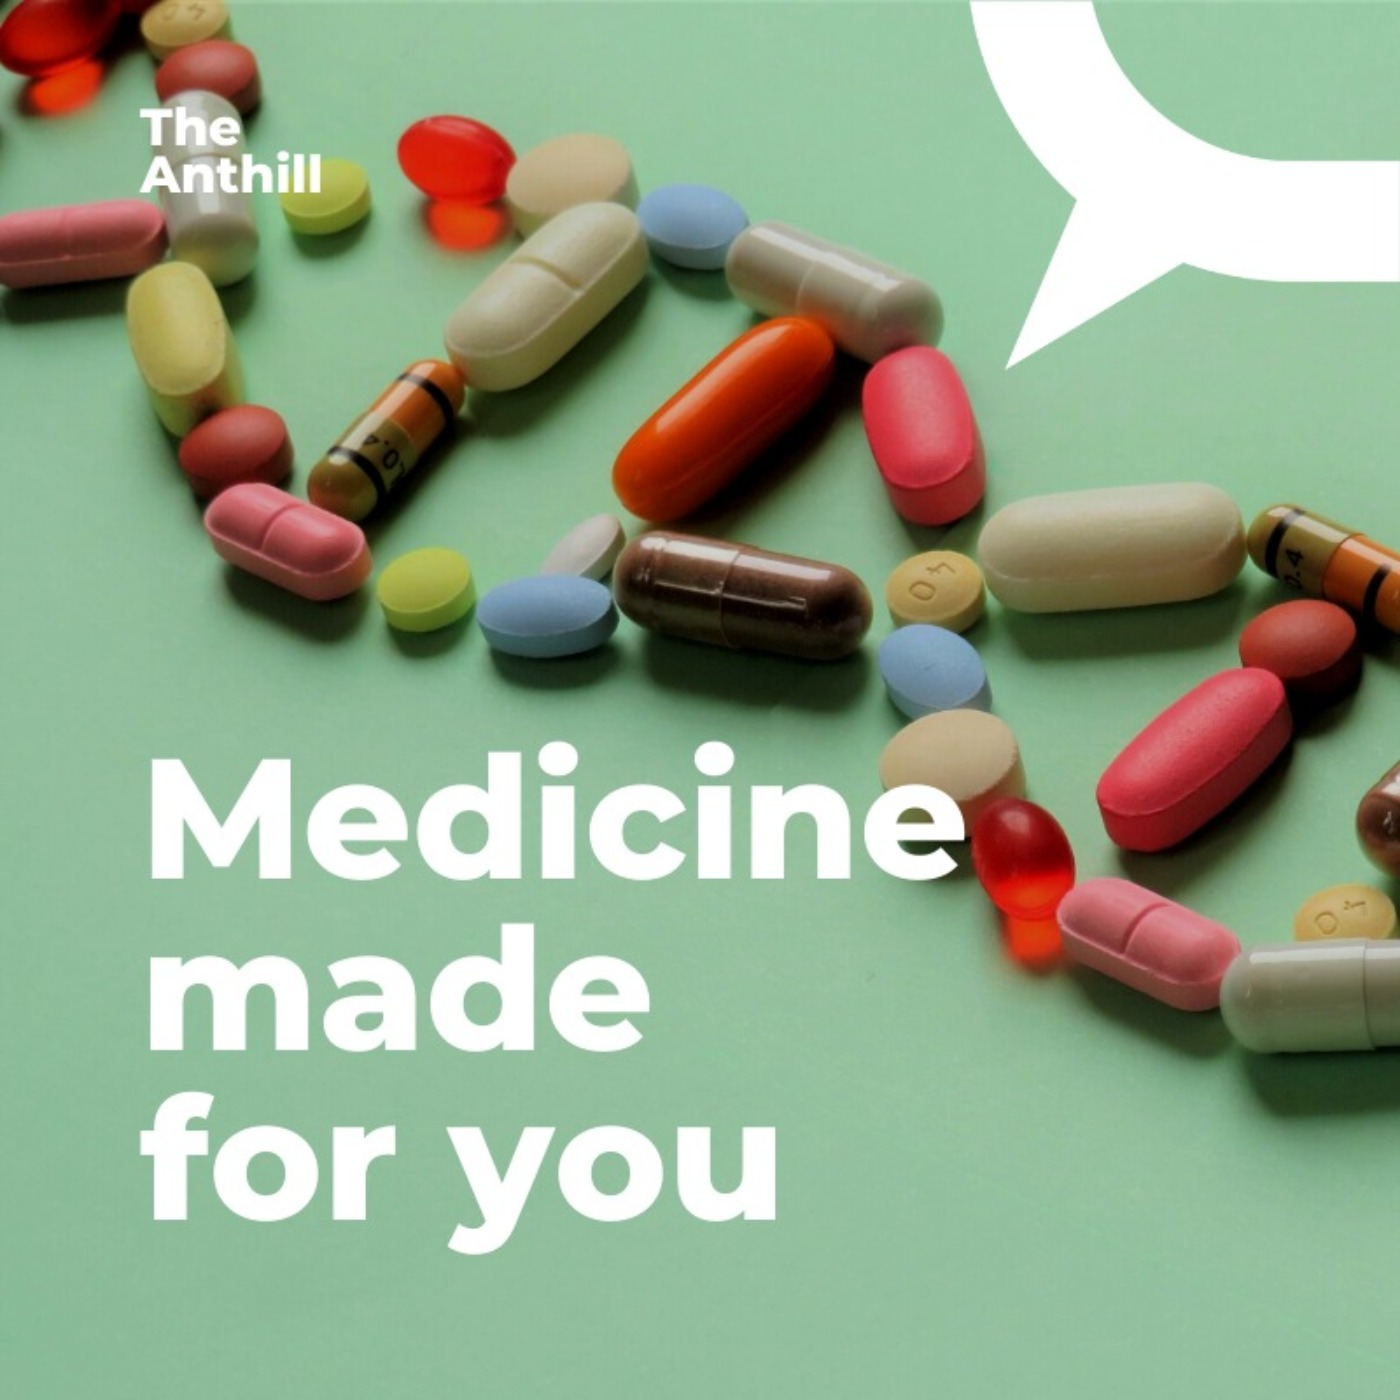 Introducing Medicine made for you